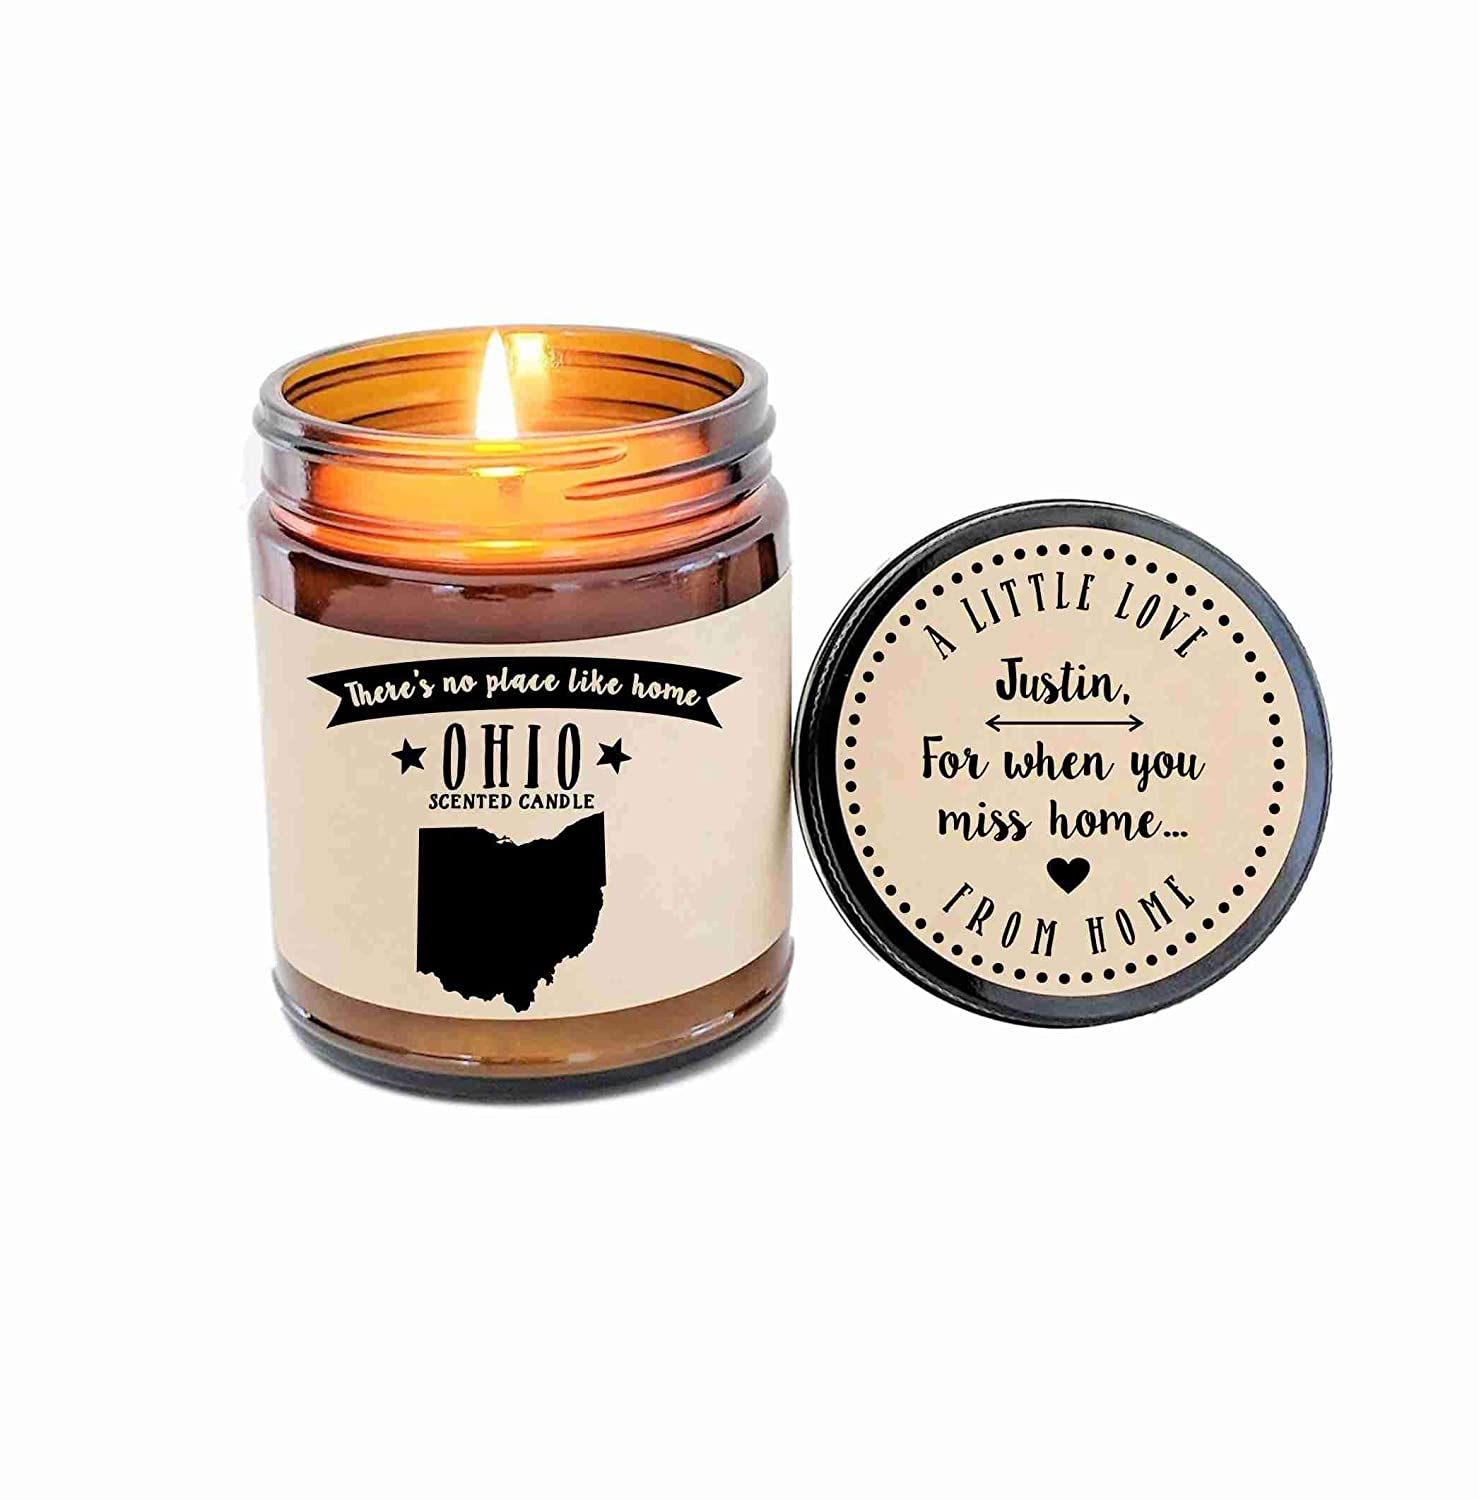 Ohio Scented Candle State Candle Homesick Gift No Place Like Home Thinking of You Holiday Gift